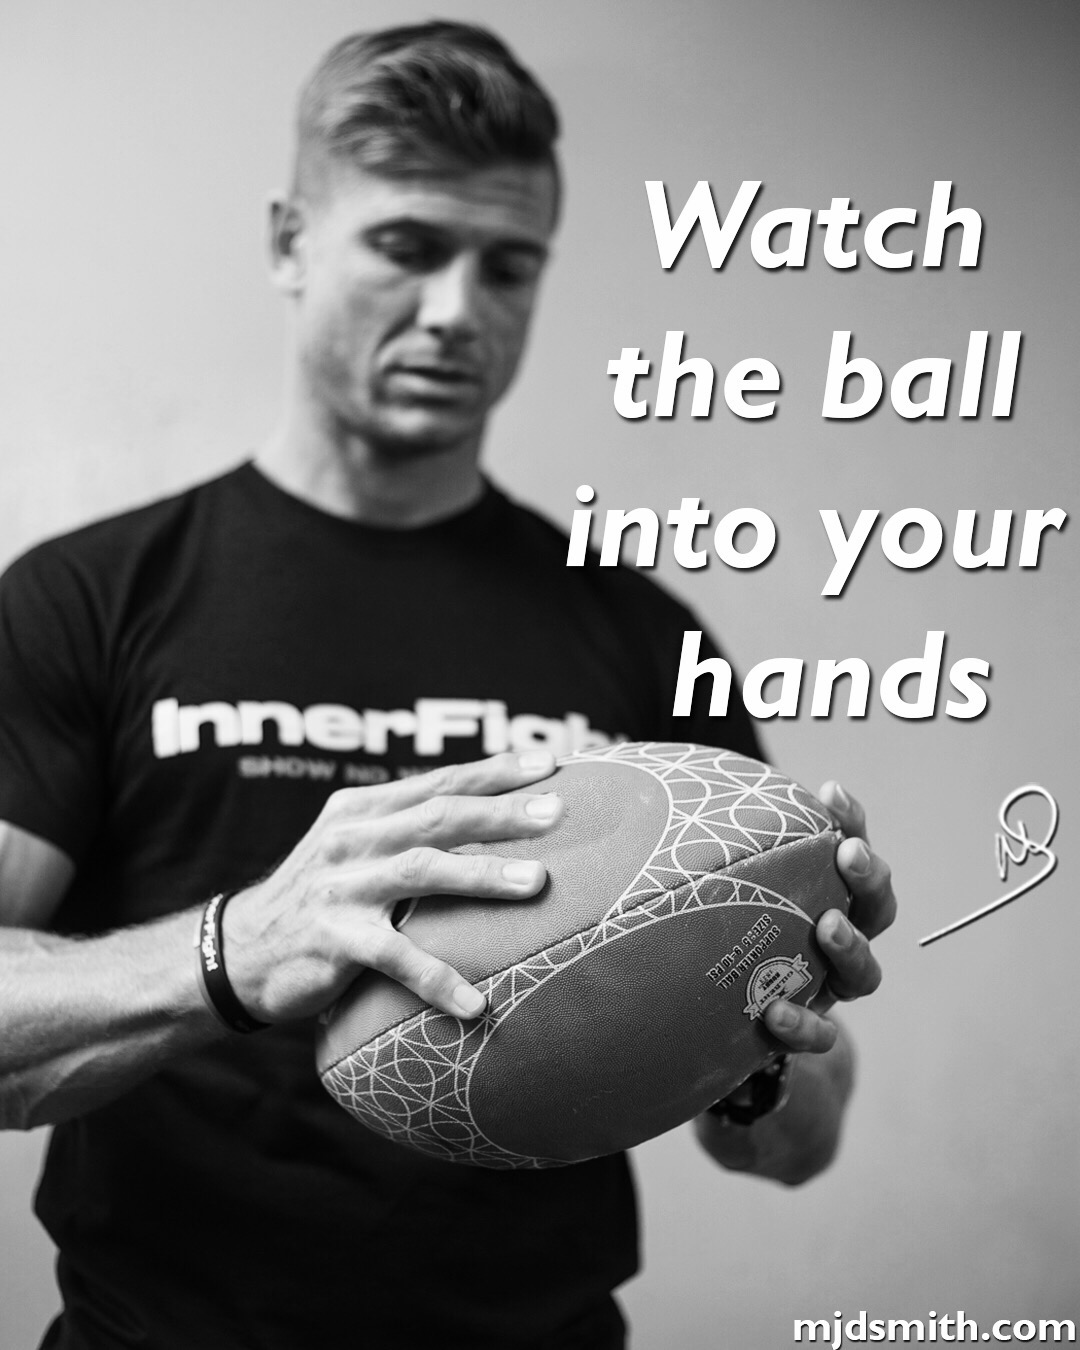 Watch the ball into your hands